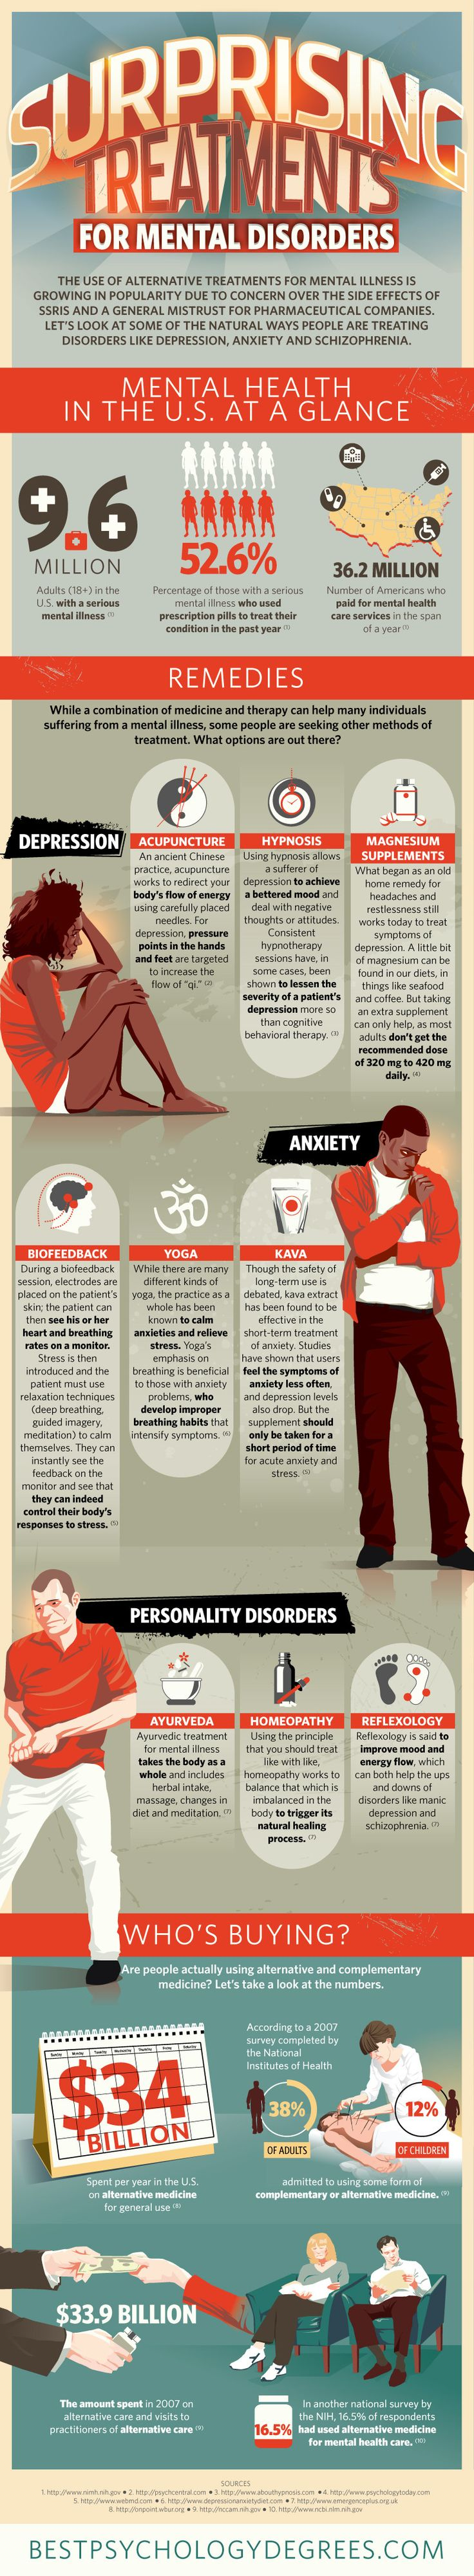 Surprising Treatments for Mental Disorders